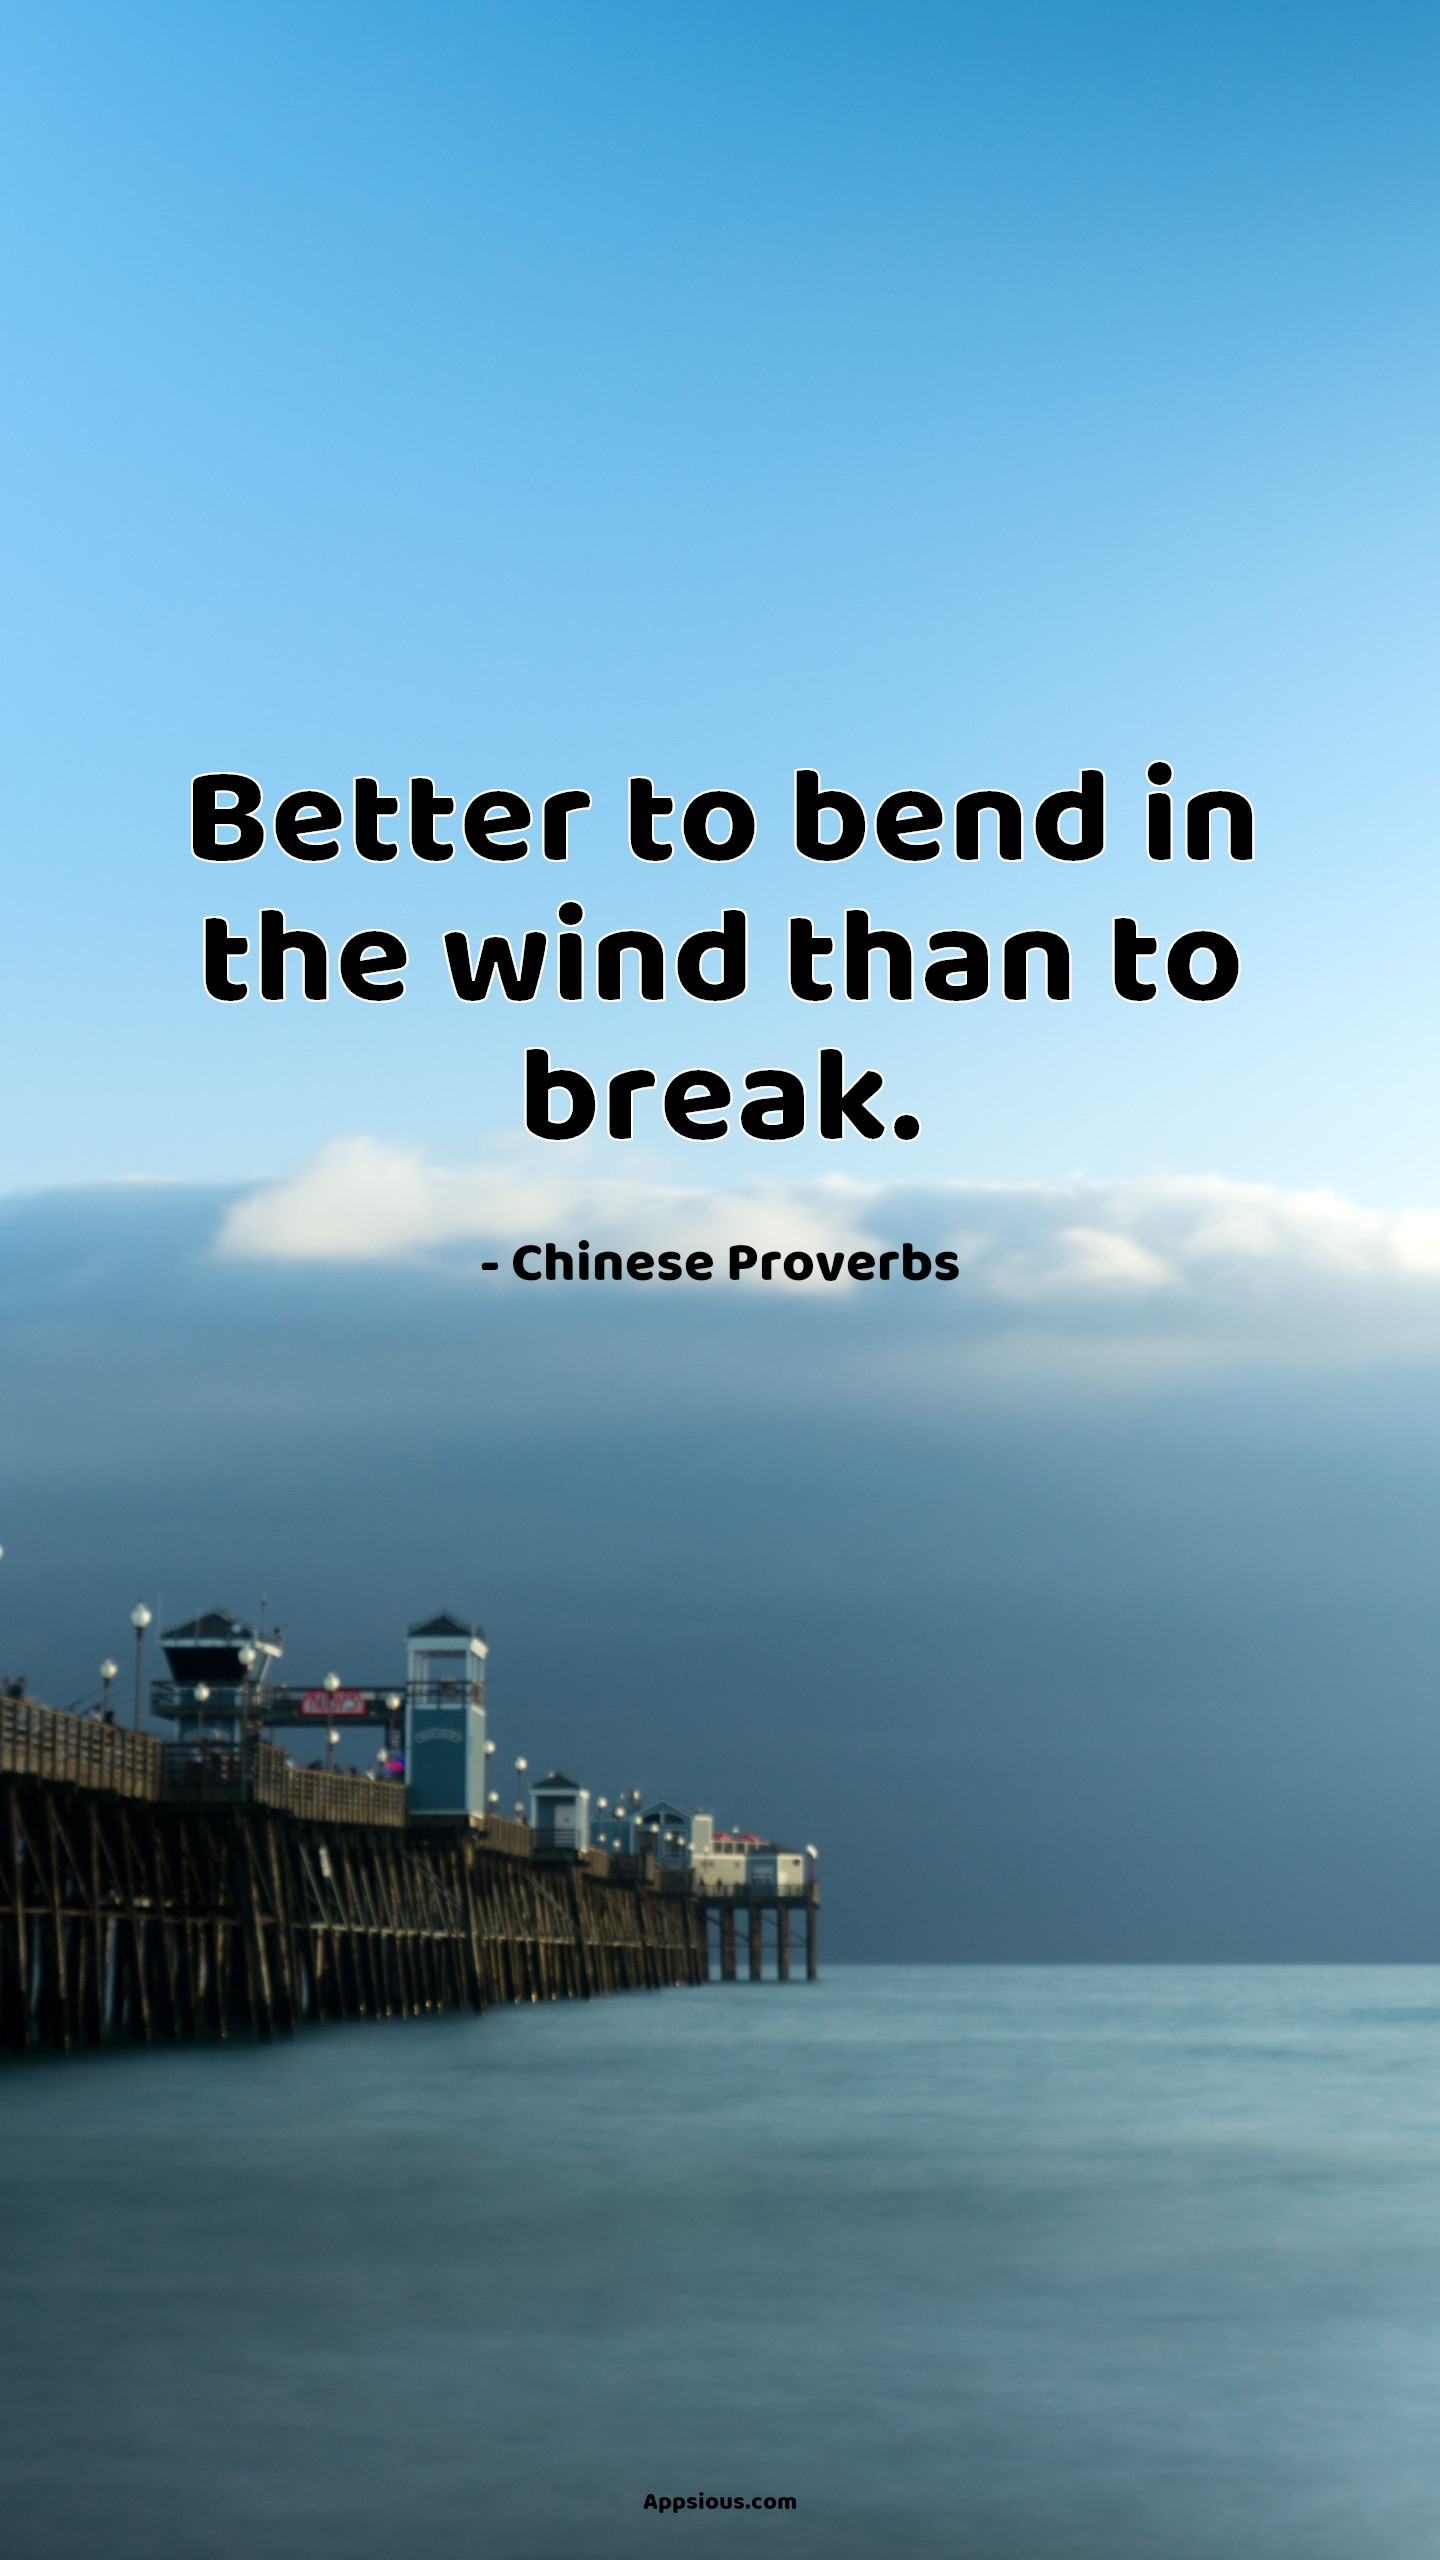 Better to bend in the wind than to break.